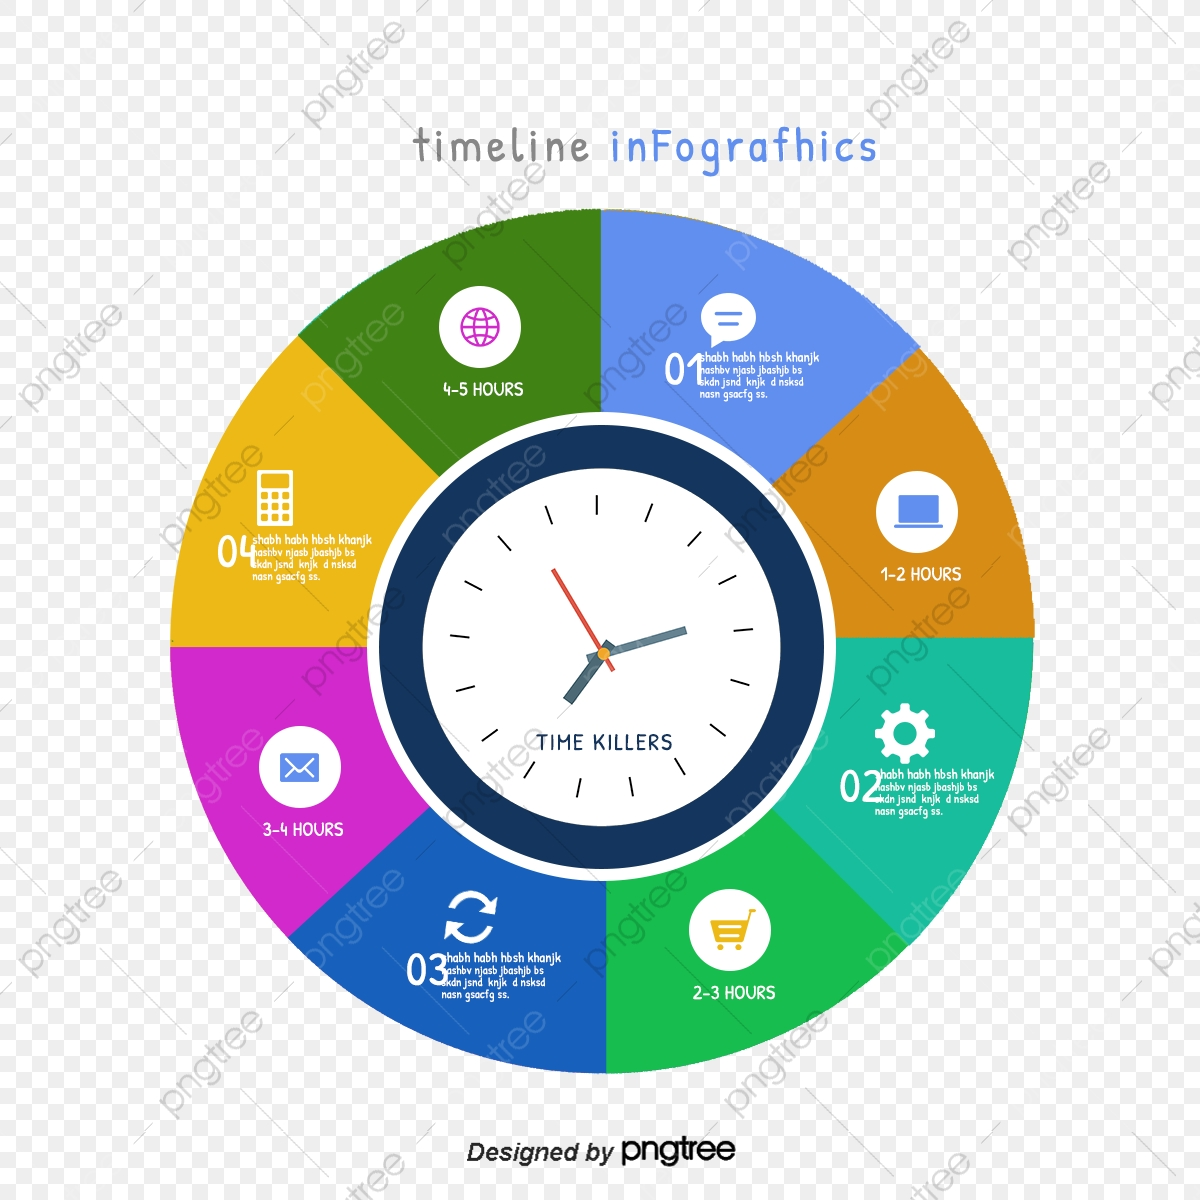 picture library A clock image download. Vector chart timeline